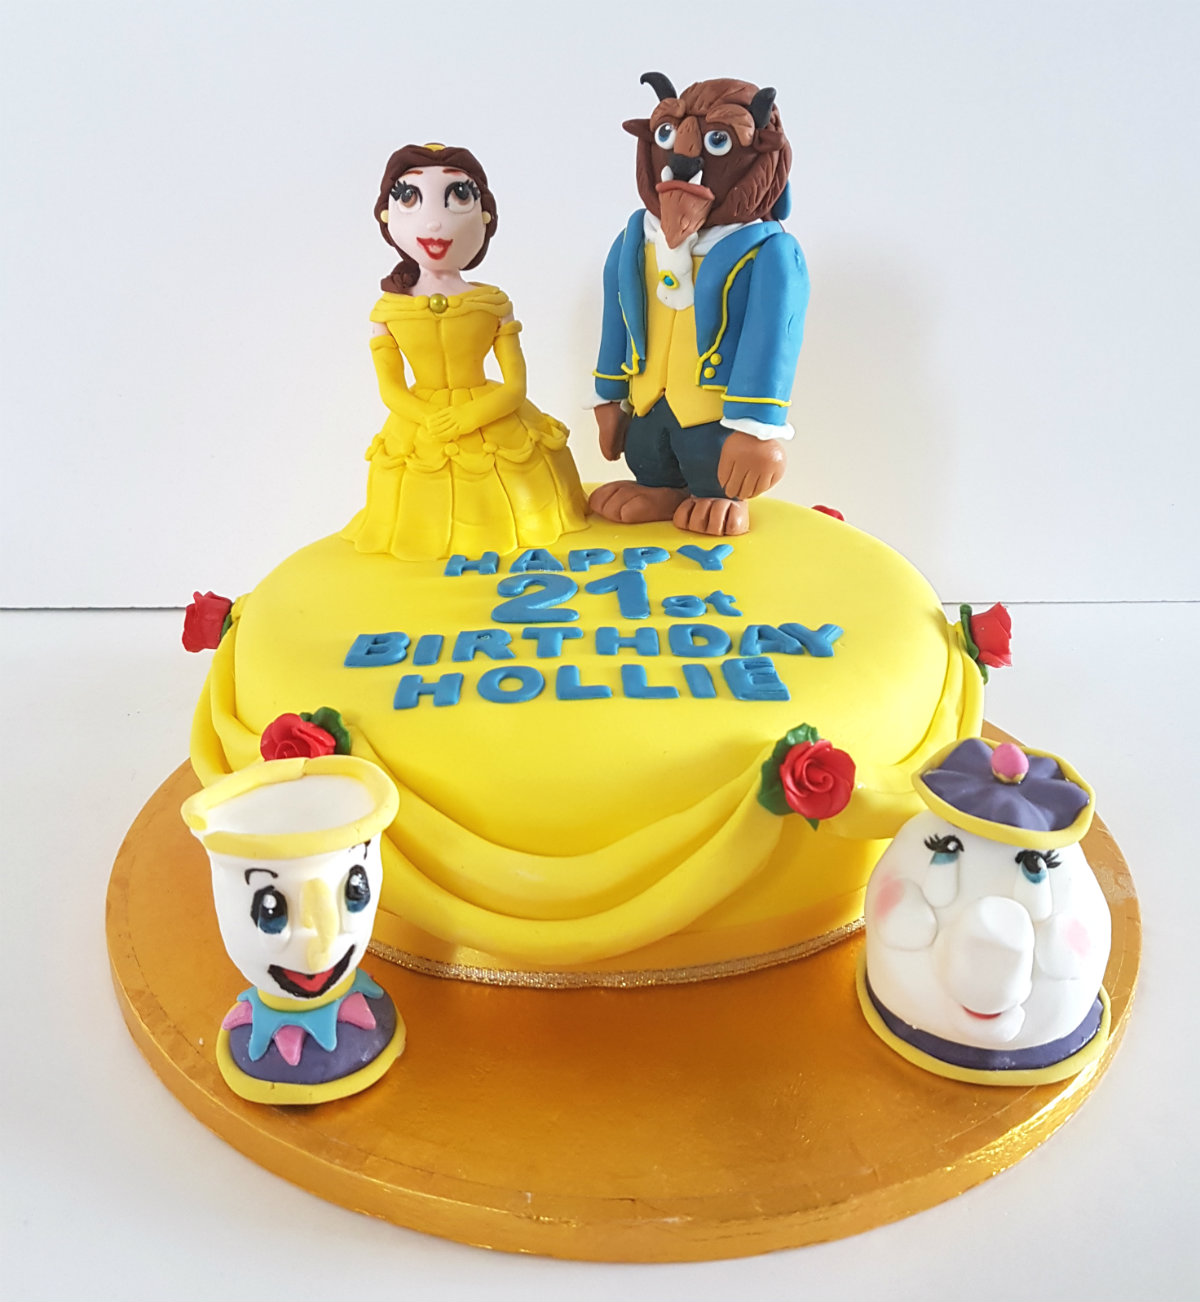 Beauty & the Beast birthday cake